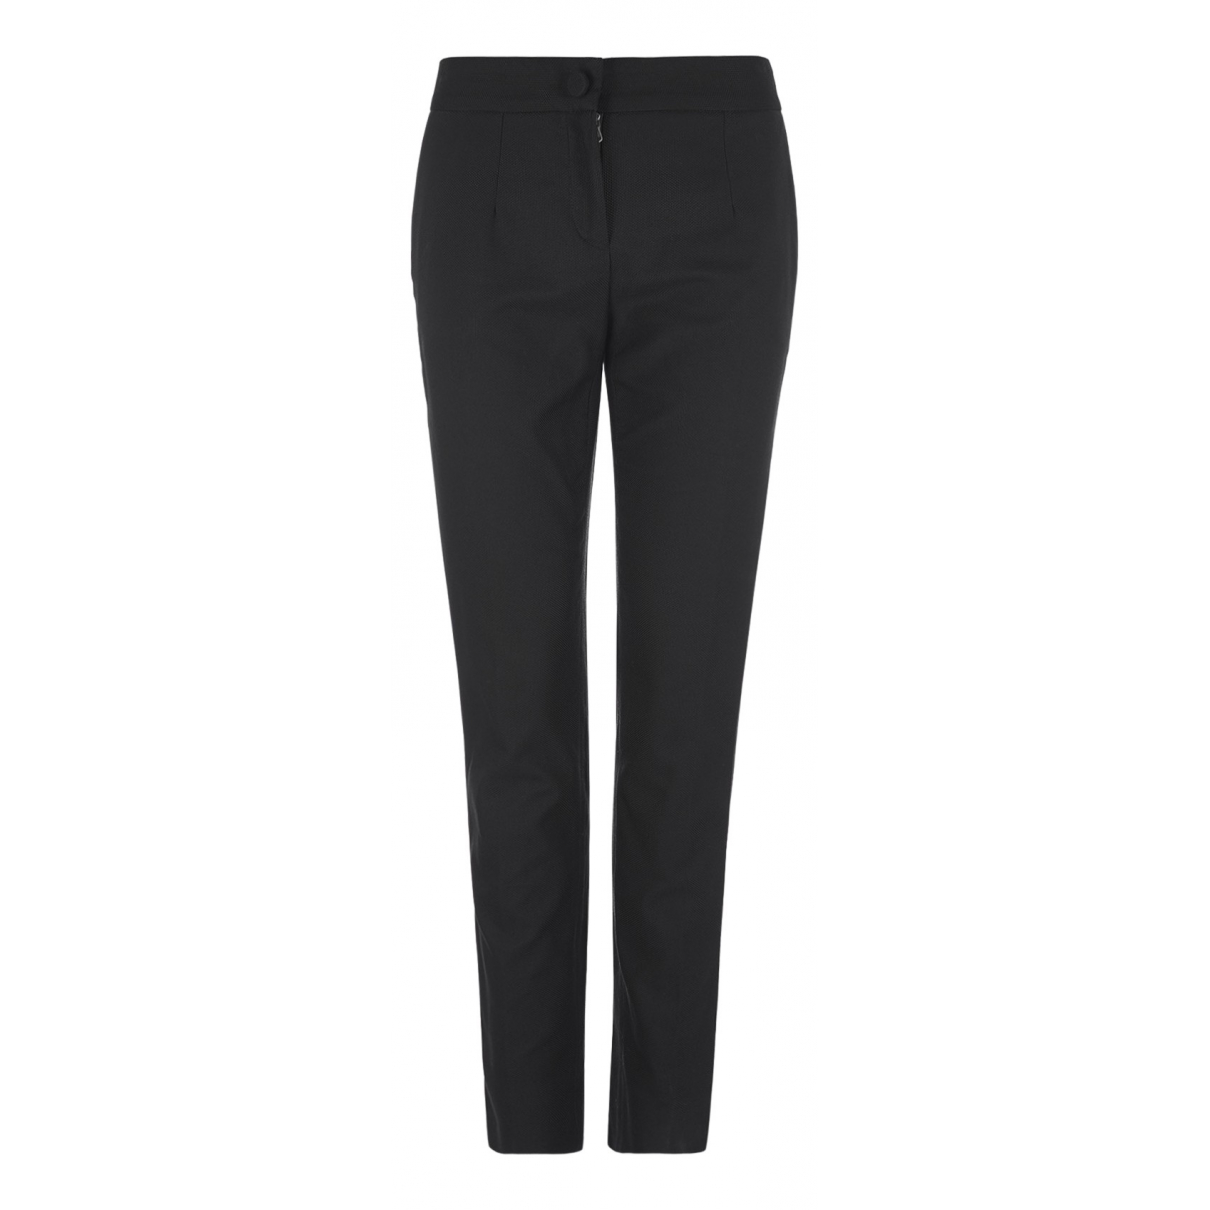 Dolce & Gabbana N Black Cotton Trousers for Women 8 UK